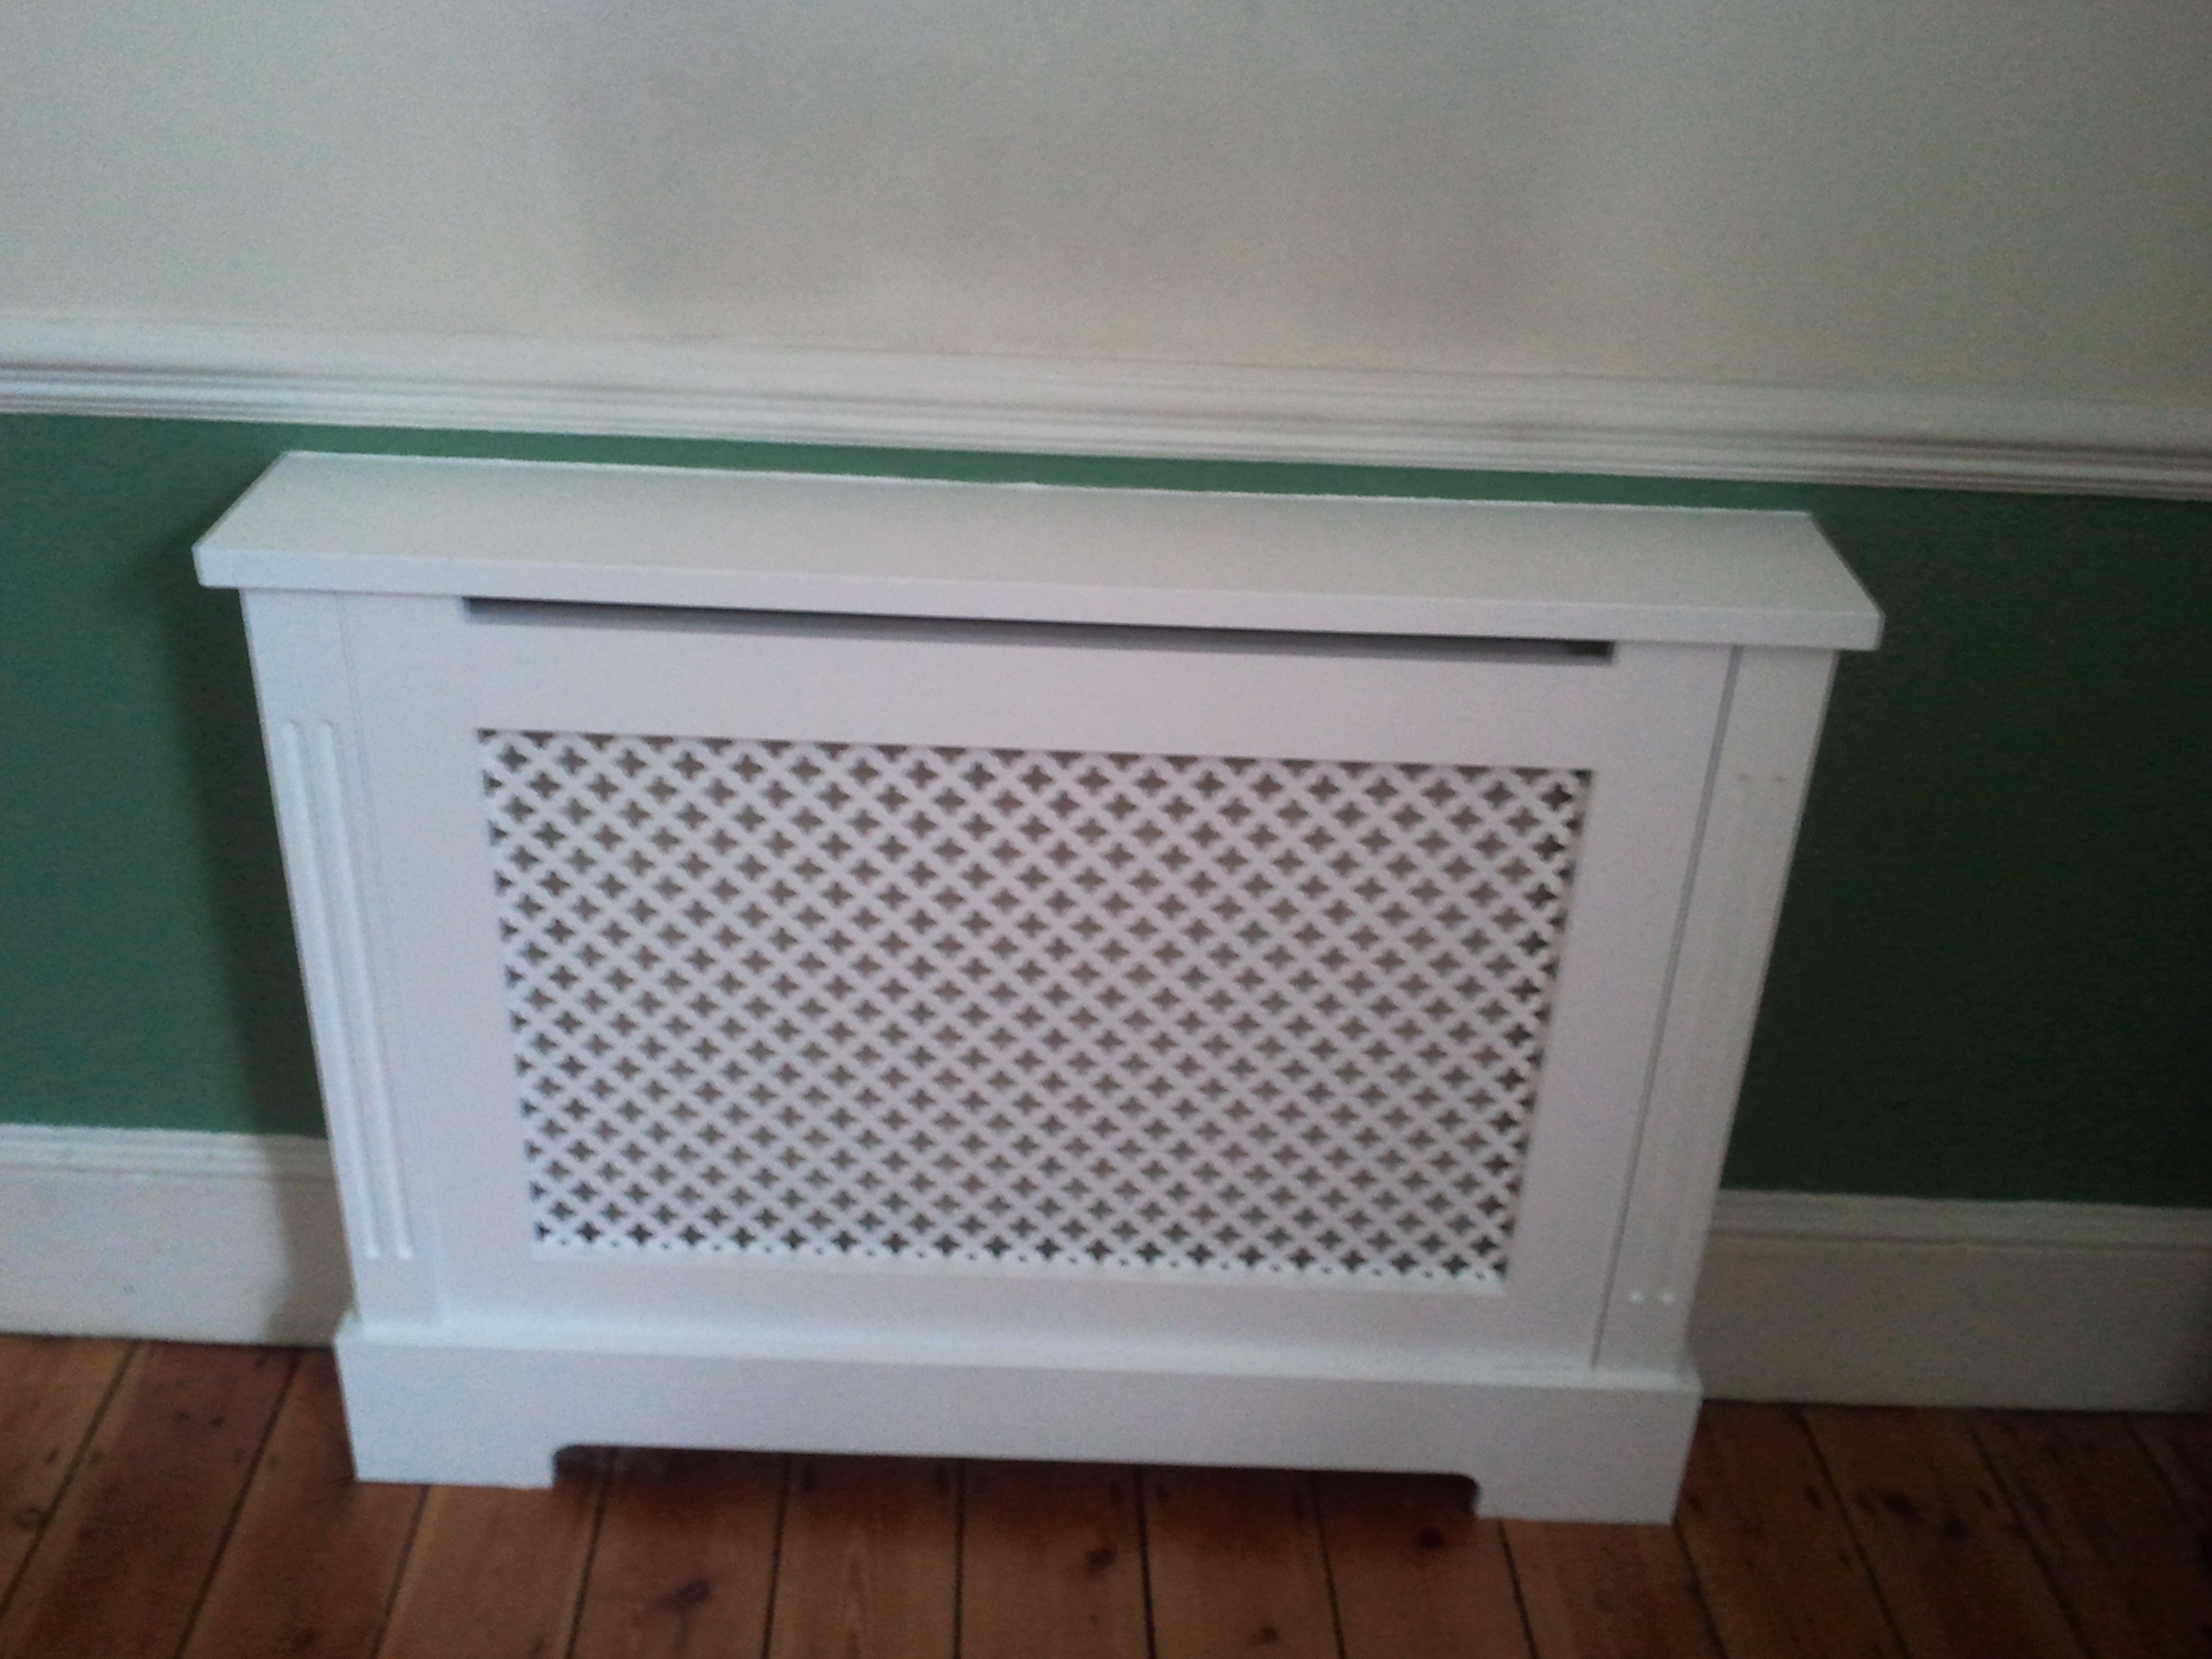 Bespoke Radiator Covers Radiator Cover Pinterest Radiators Inside Radiator Cover Shelf Unit (#4 of 15)